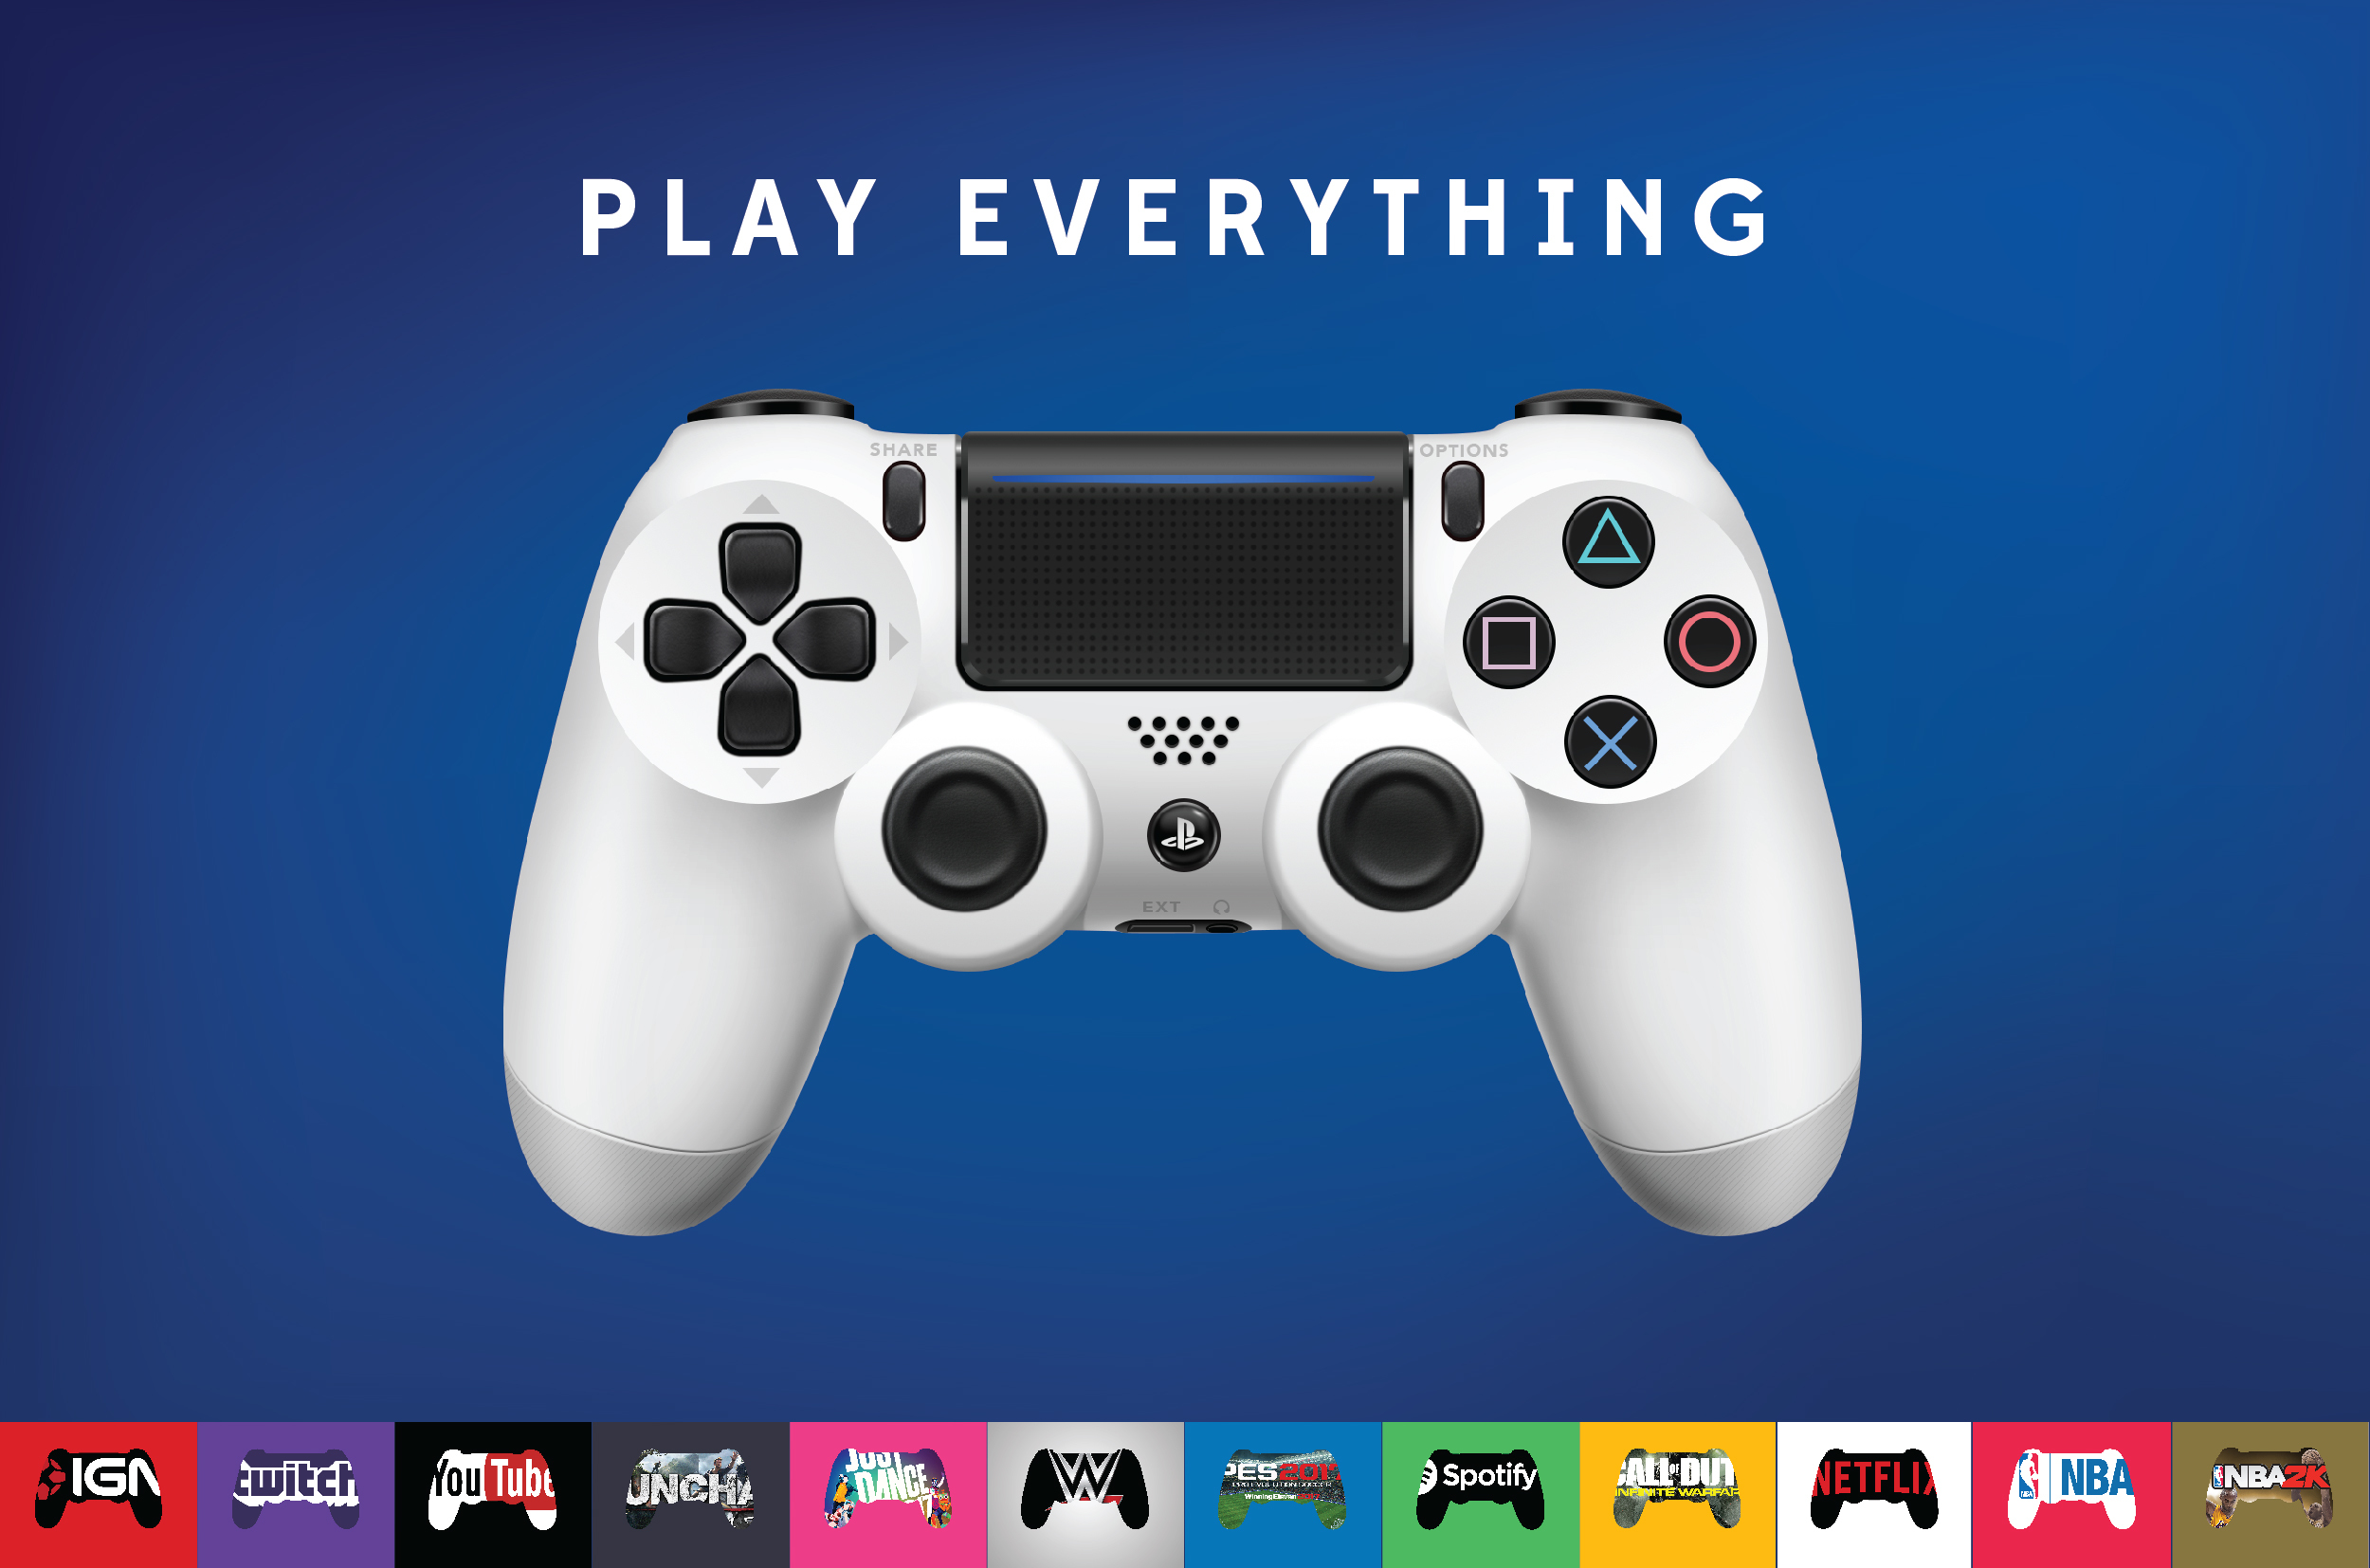 PlayStation's Play Everything Campaign Awarded Bronze in WARC Prize for Effective Social Strategy